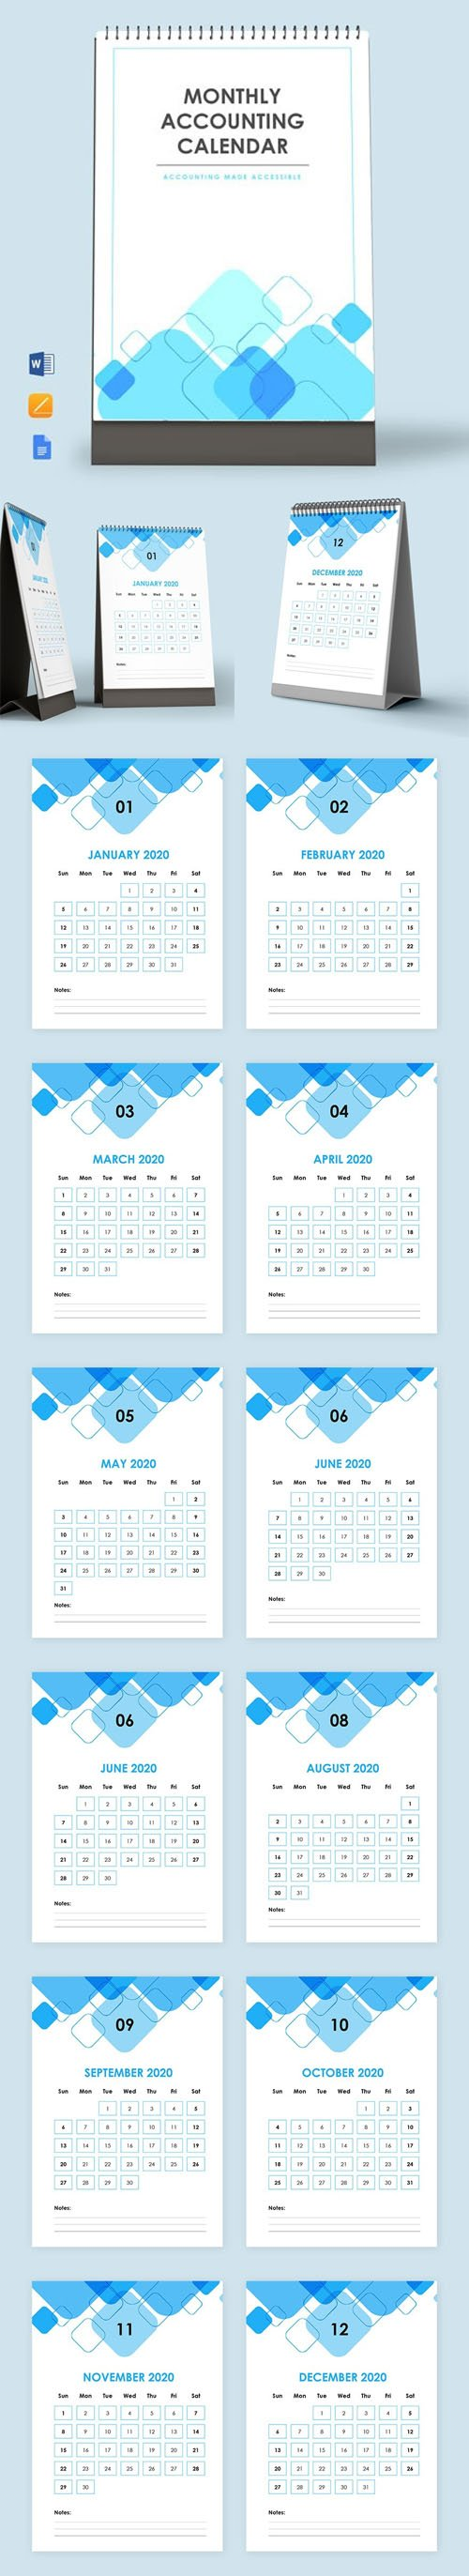 Monthly Accounting Desk Calendar Templates